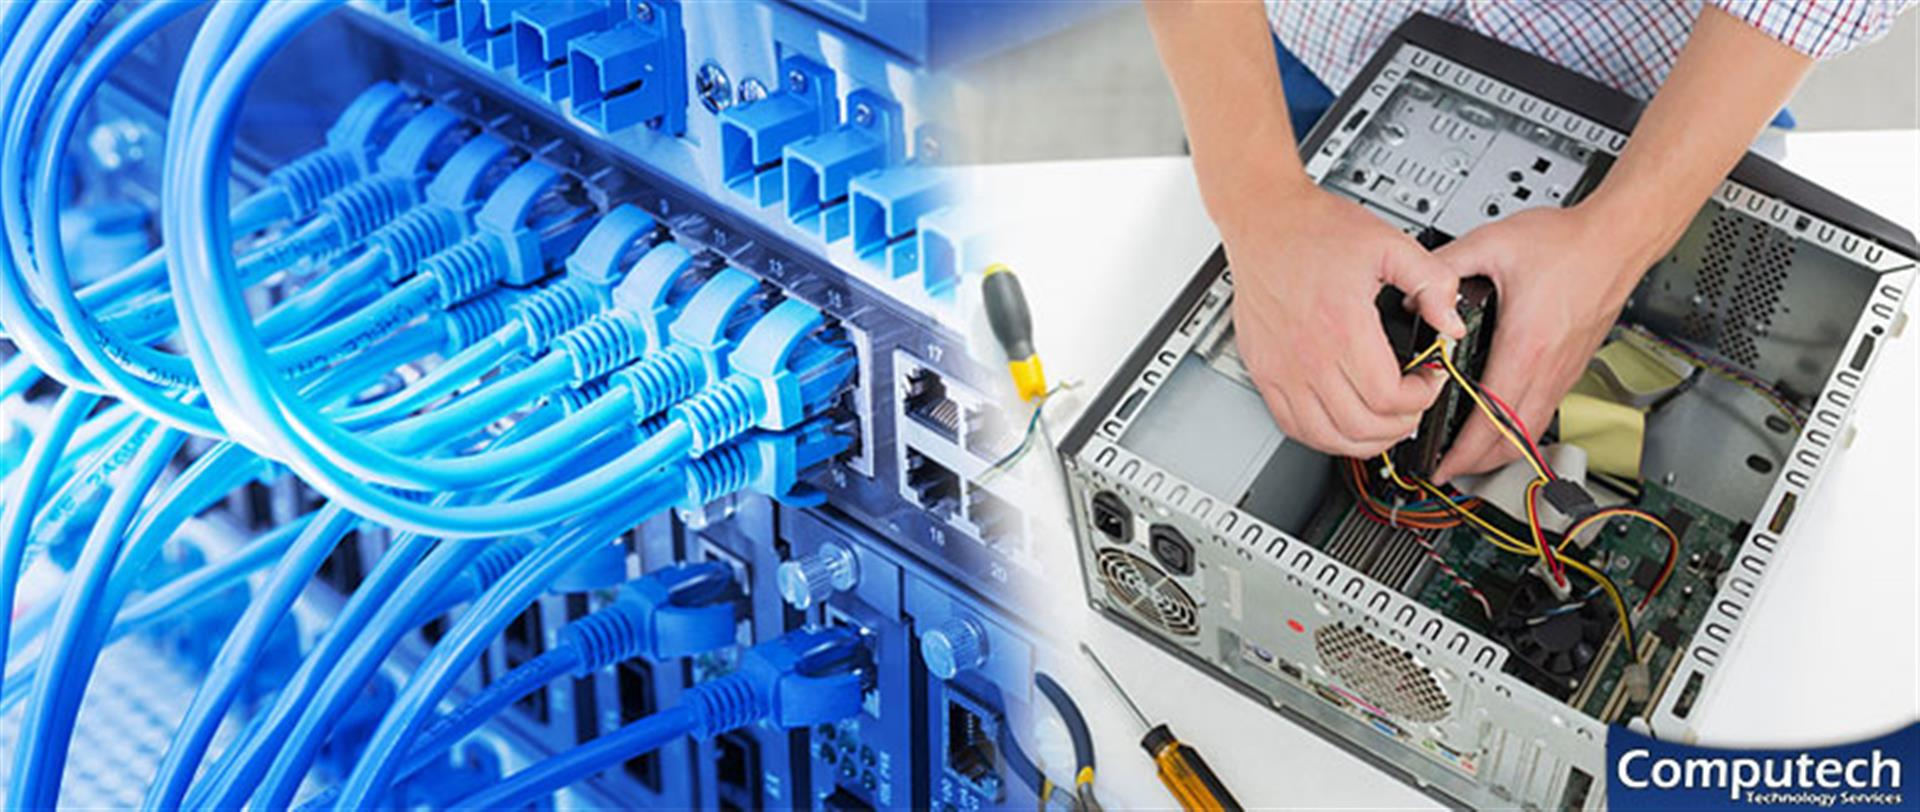 Mount Carmel Tennessee On Site PC & Printer Repair, Networks, Voice & Data Cabling Solutions